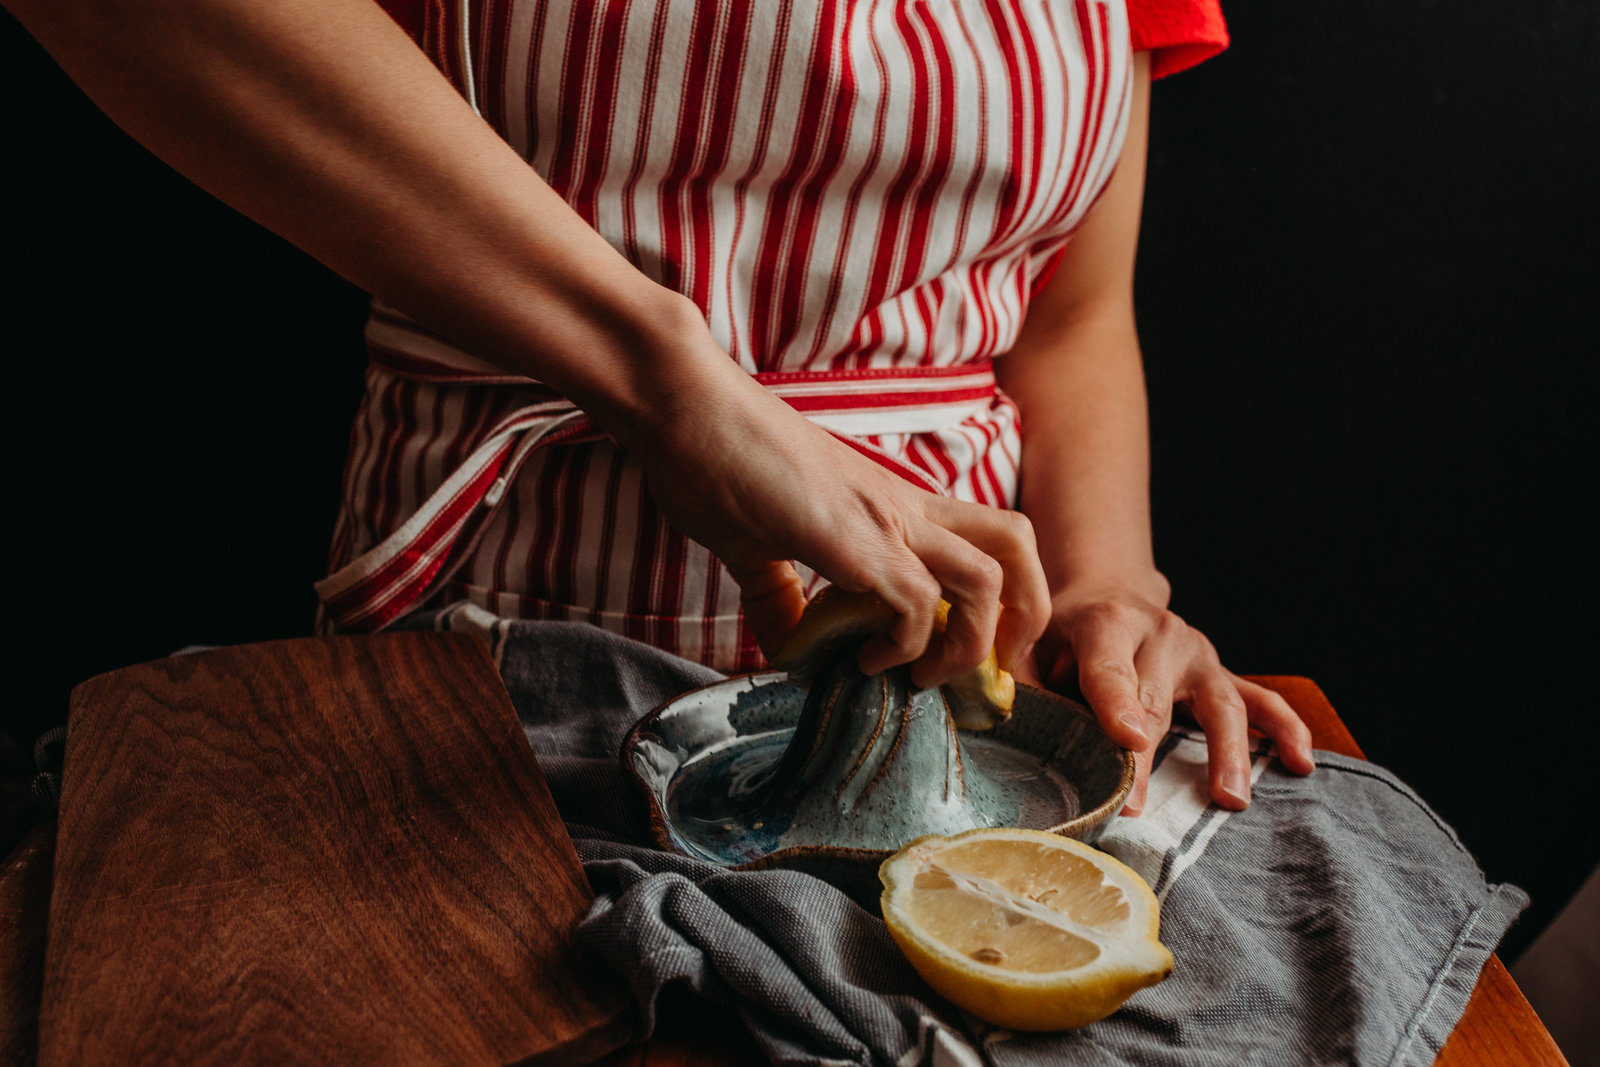 woman presses lemon onto juicer while wearing a red striped apron